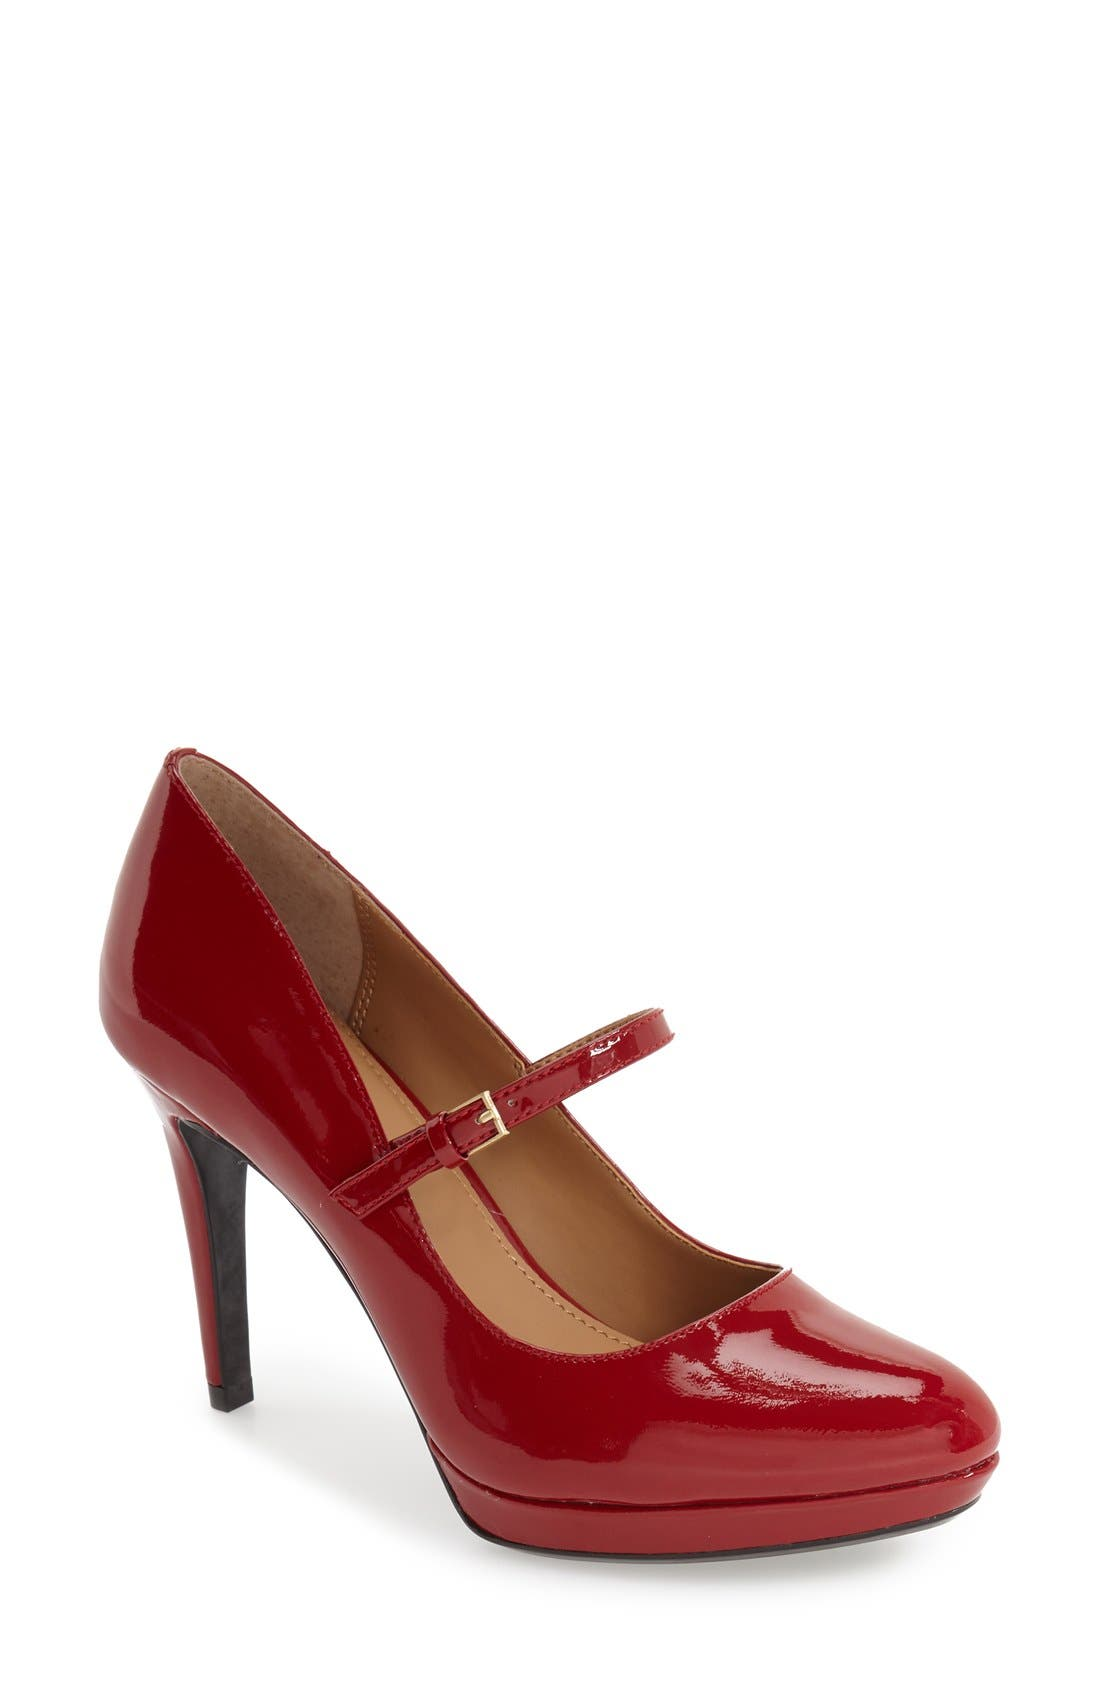 Main Image - Calvin Klein 'Paislie' Mary Jane Pump (Women)